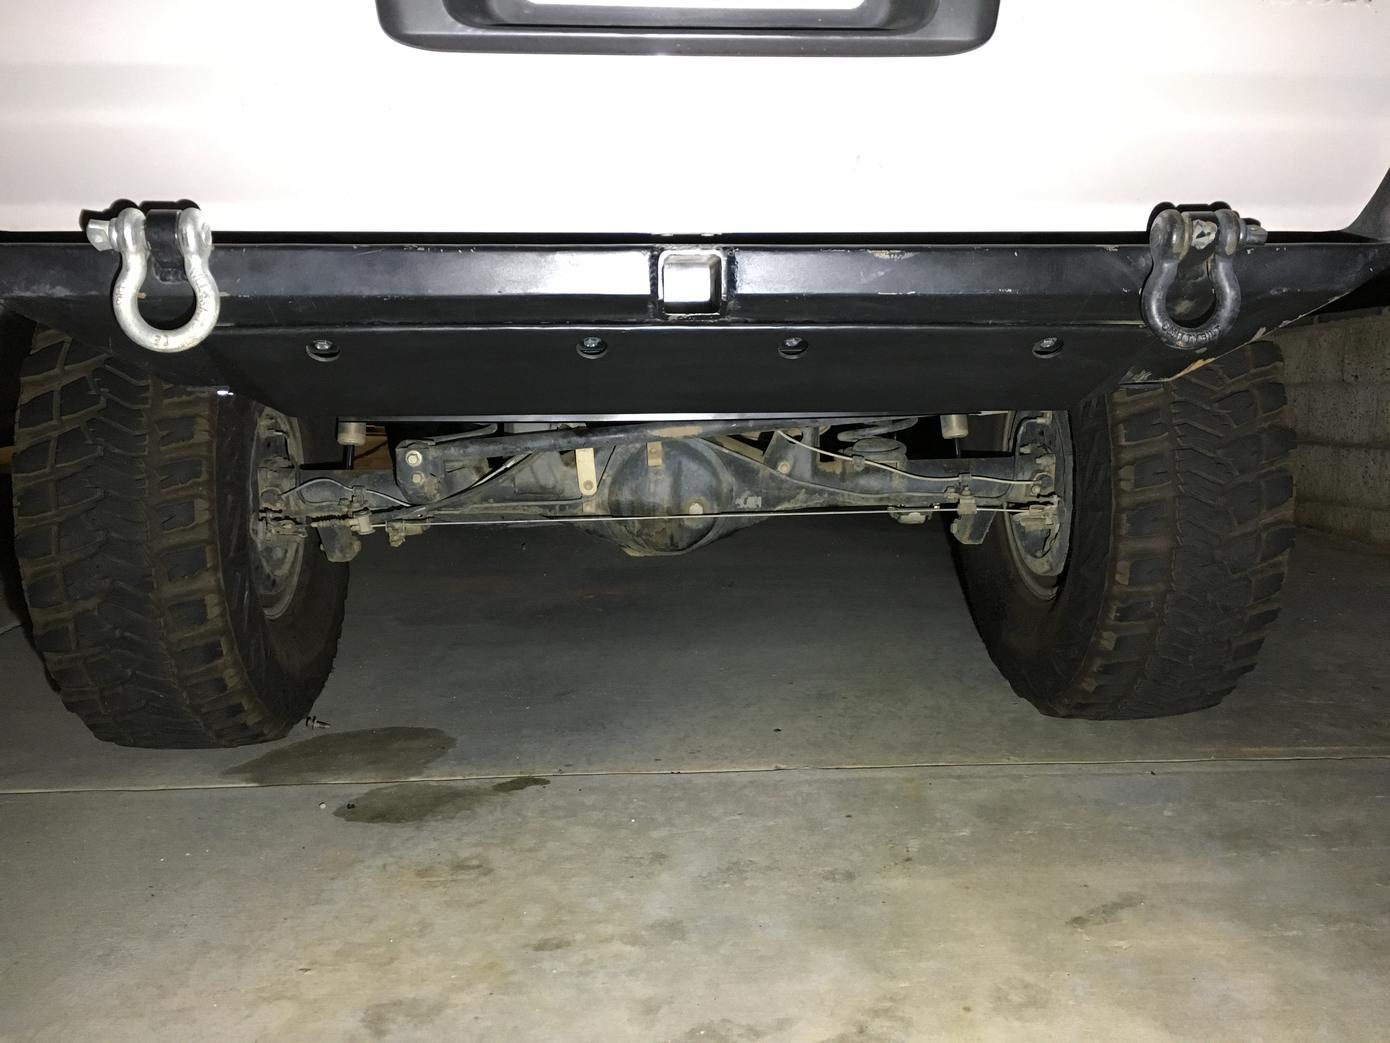 Fuel Tank Relocation (and new Rear Bumper design)-img_6273-jpg